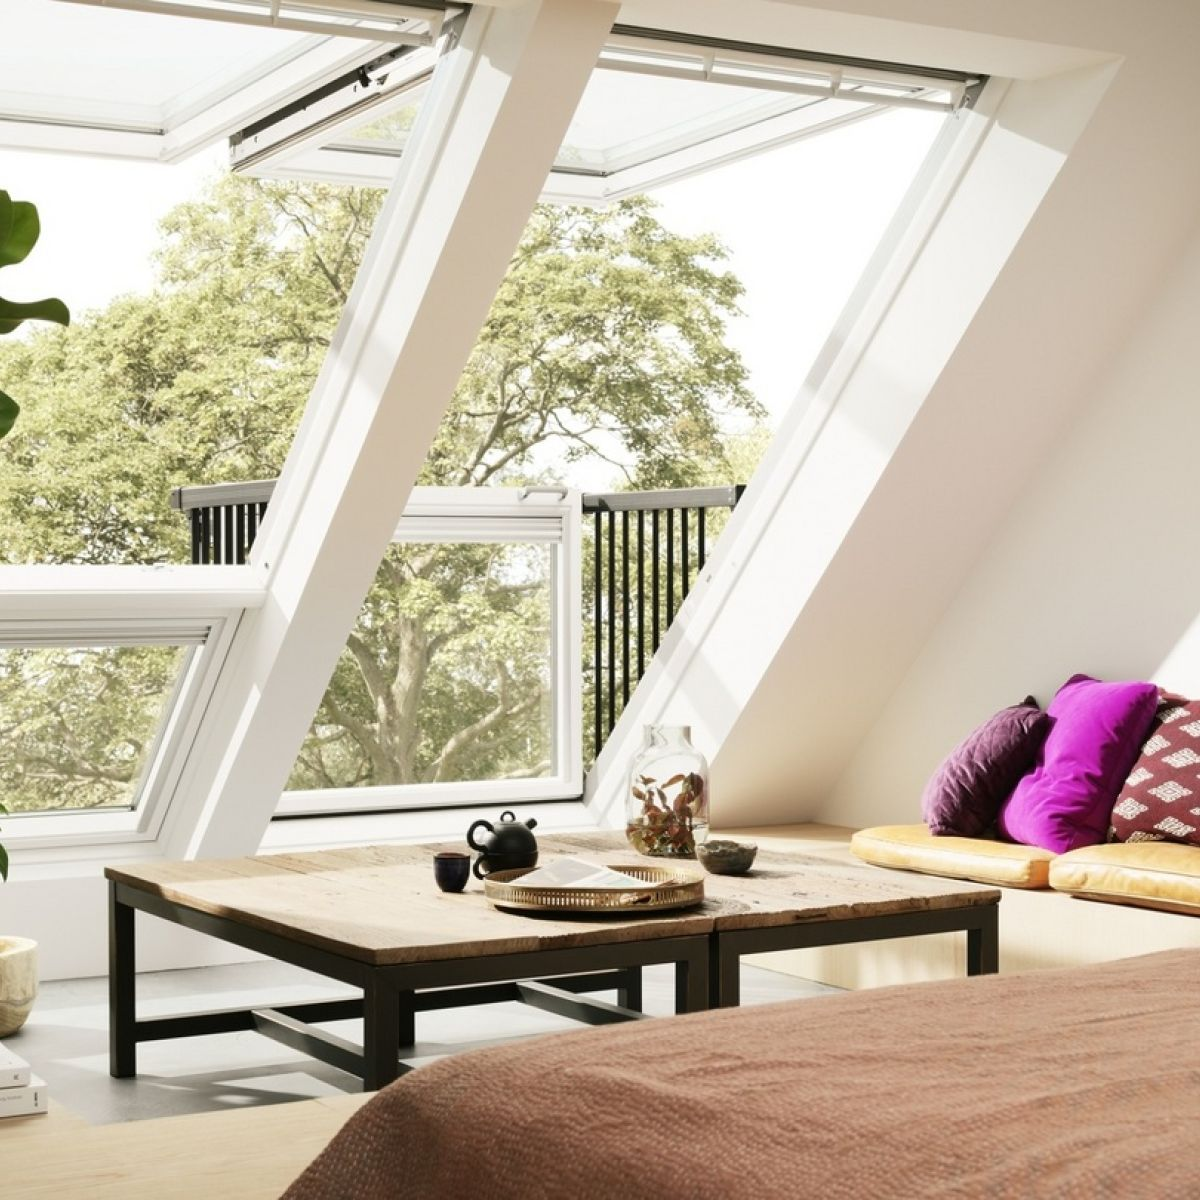 Lofty Ideals The Dos And Don Ts Of Converting Your Attic